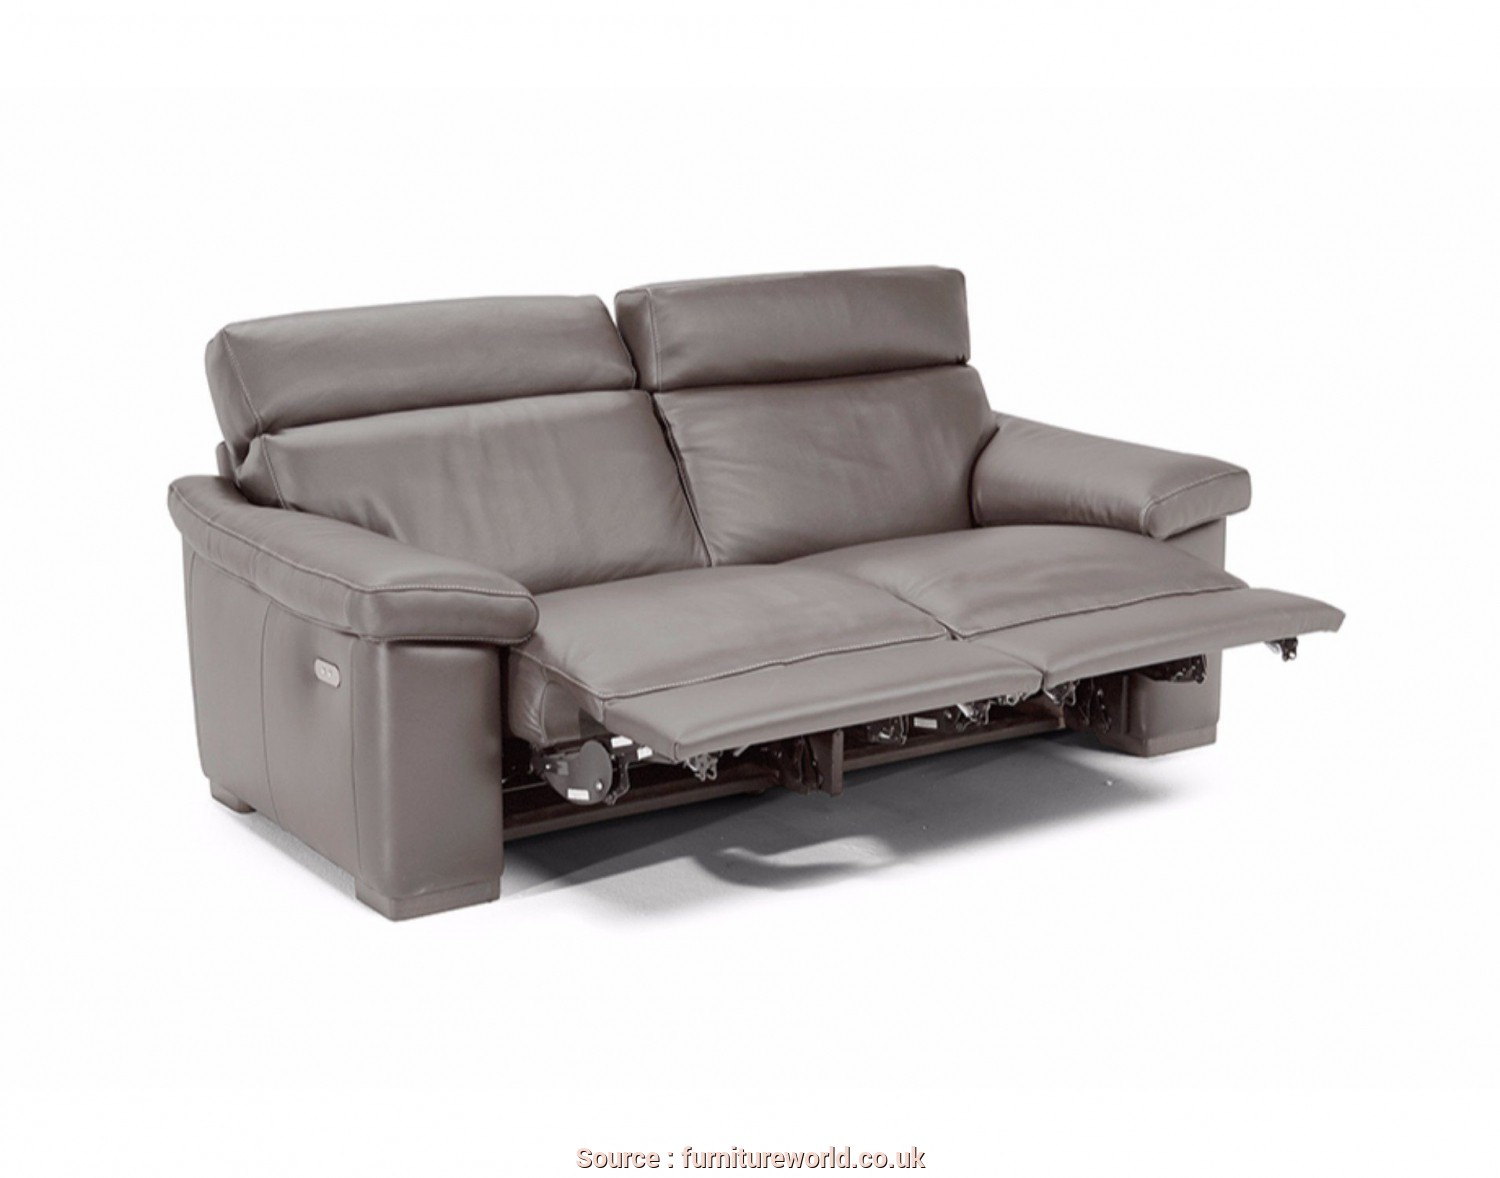 Divano, Posti Natuzzi, Minimalista The Natuzzi Divano Leather Small 2 Seater Loveseat Recliner Sofa